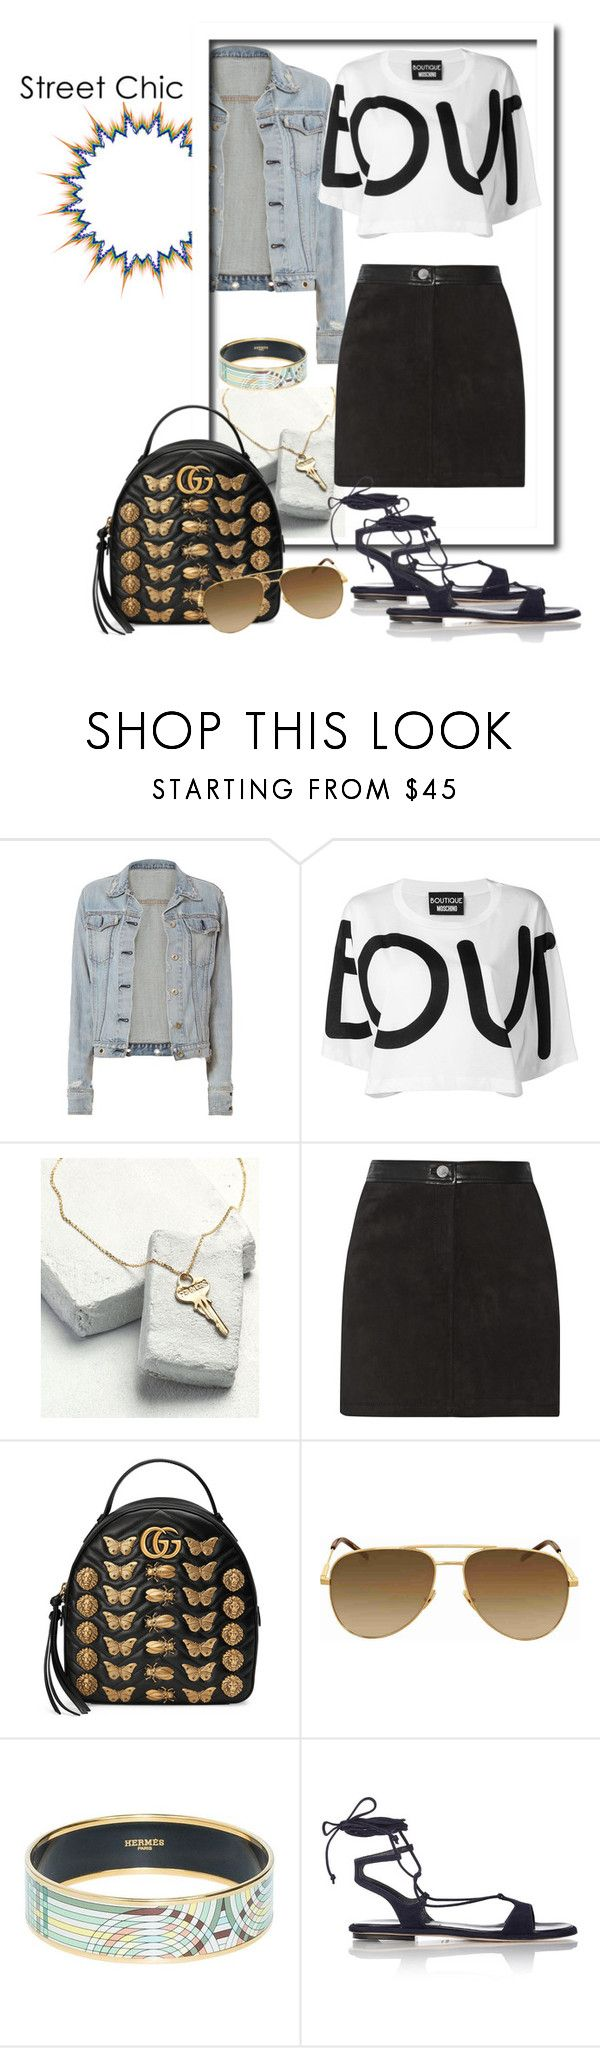 """""""Chic"""" by tattooedmum ❤ liked on Polyvore featuring rag & bone, Boutique Moschino, Rebecca Minkoff, Gucci, Yves Saint Laurent, Hermès, Miu Miu, contestentry and StreetChic"""